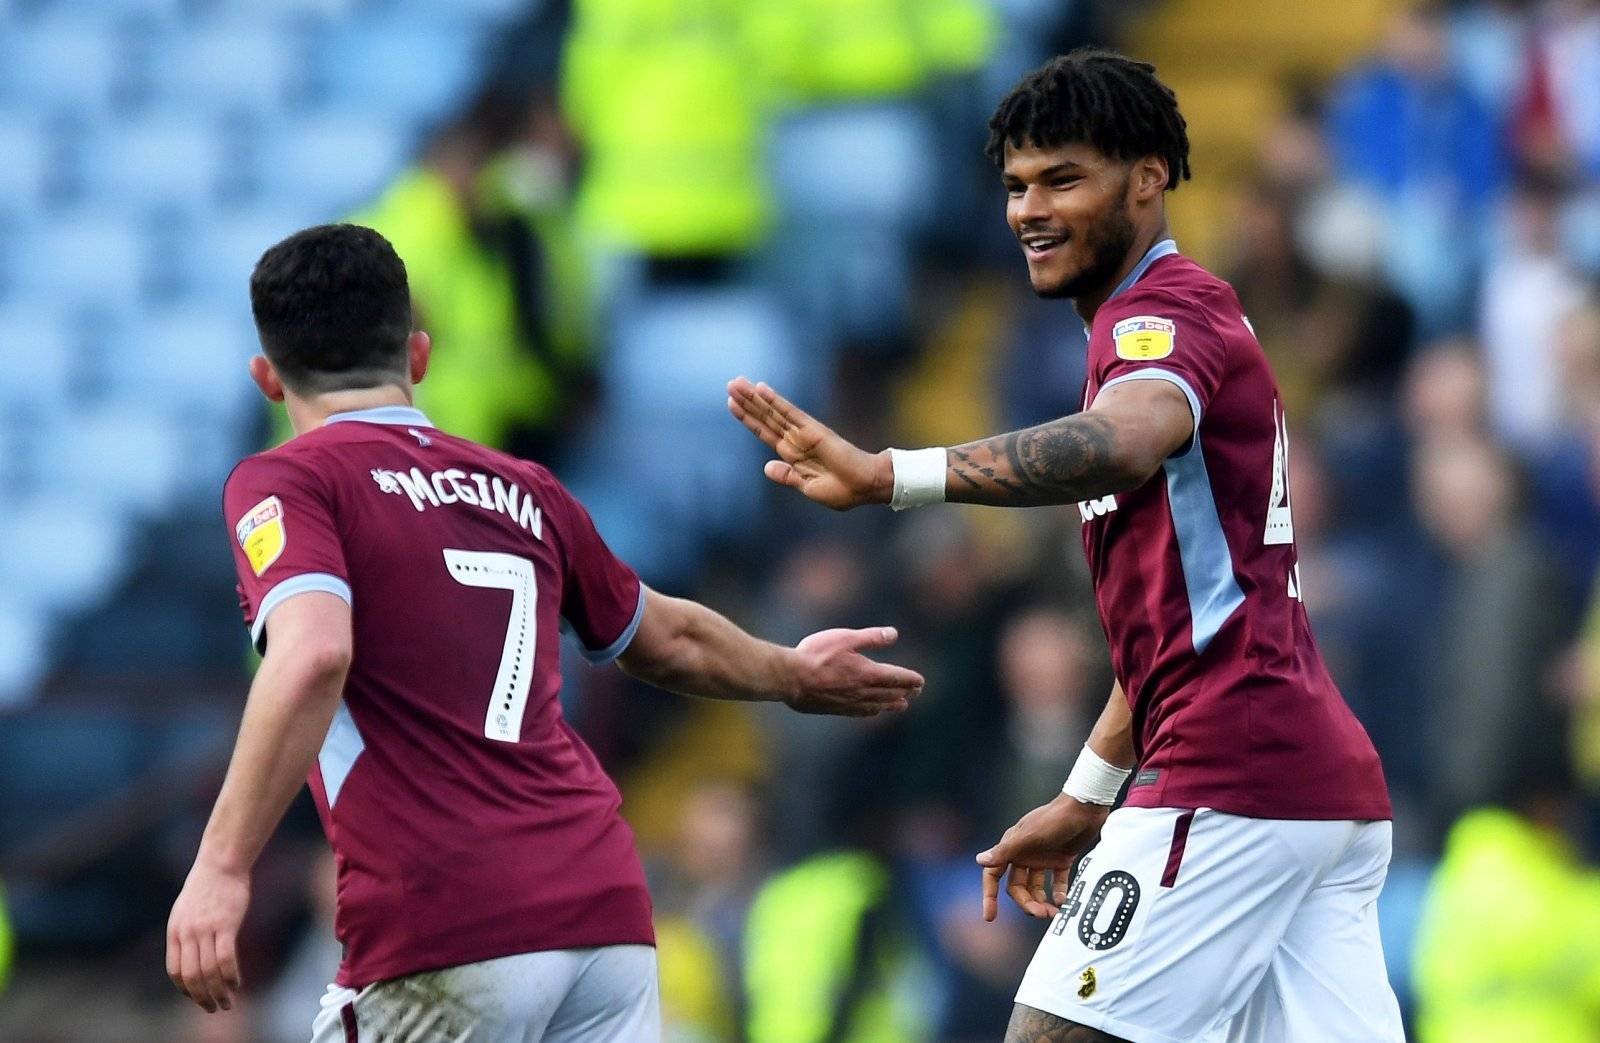 Aston Villa: Class might be temporary